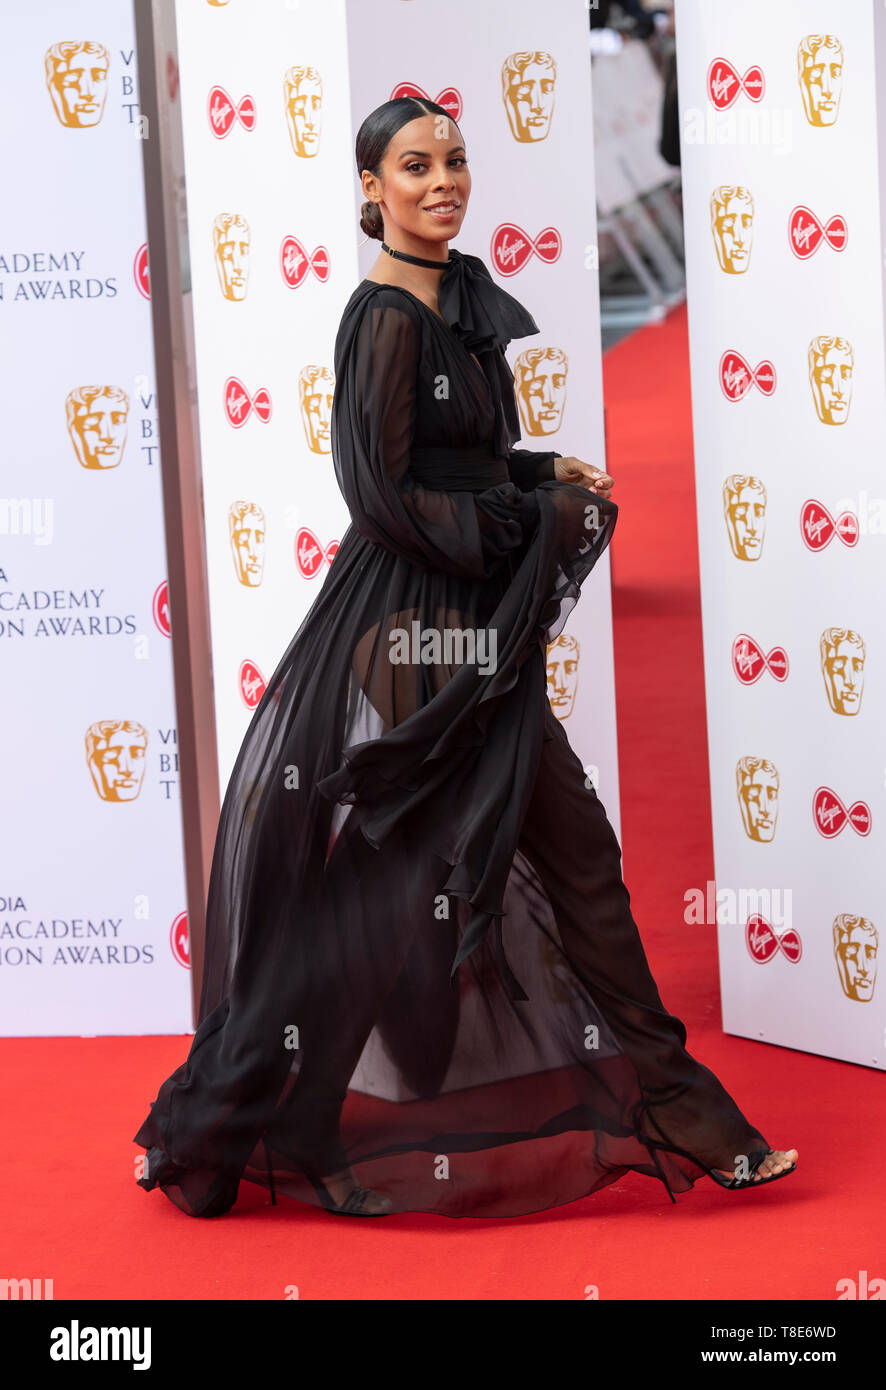 London, UK. 12th May, 2019. Rochelle Humes attends the Virgin Media British Academy Television Awards at The Royal Festival Hall on May 12, 2019 in London, England. Credit: Gary Mitchell, GMP Media/Alamy Live News - Stock Image